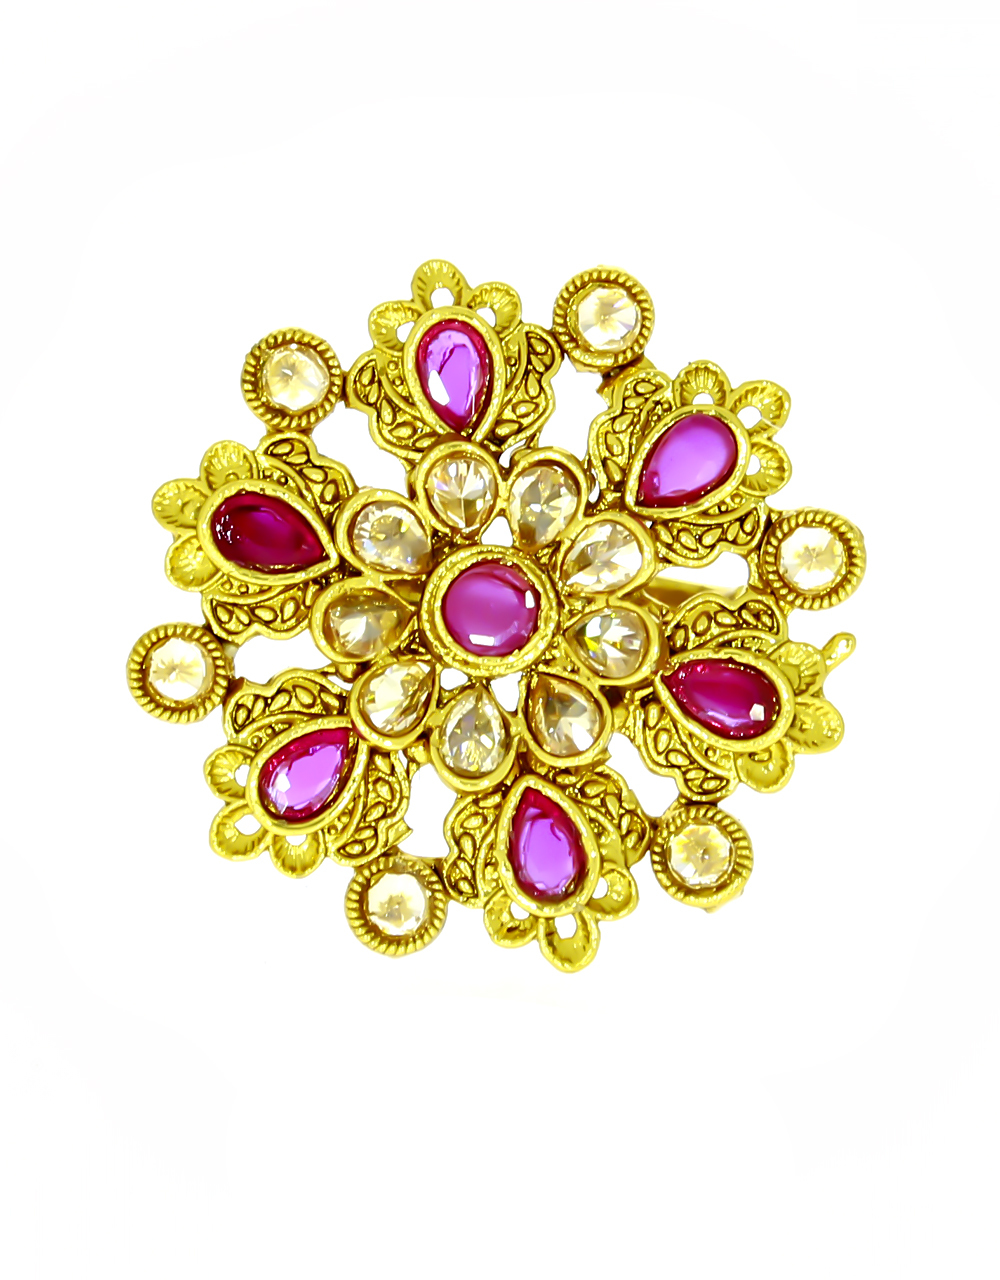 Pink Colour Classy Floral Design Finger Ring for Women Styled With Sparkling Stones